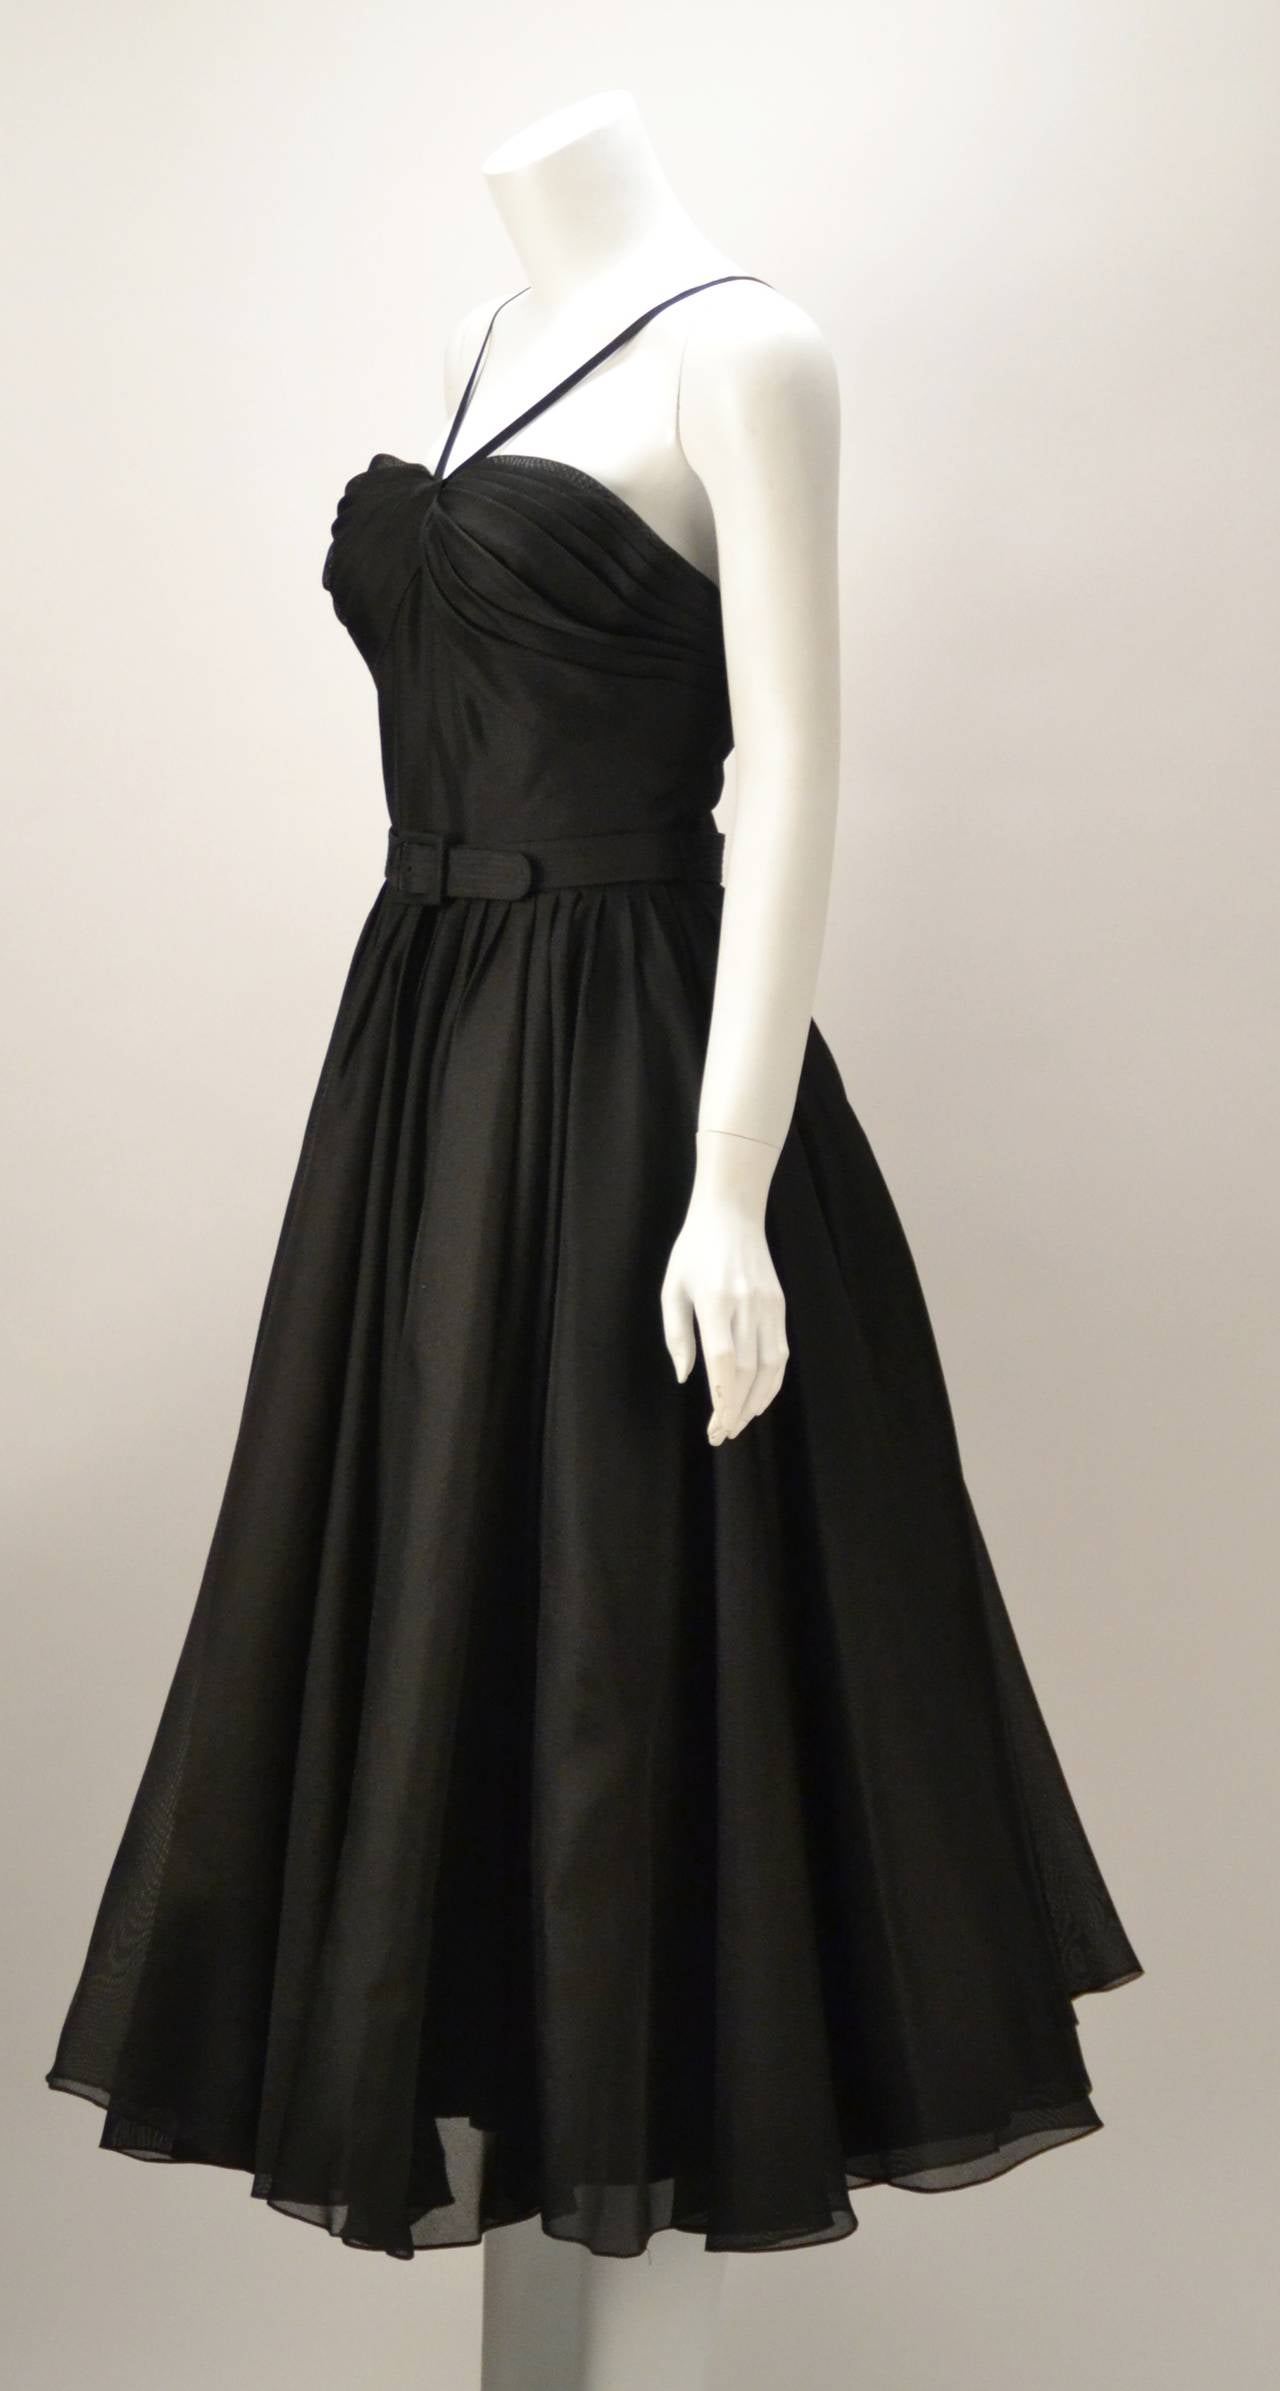 Extremely beautiful rare dress created by Traina-Norell in 1955.    The halter day or evening dress is made of black taffeta and boasts a sheer overlay halter attached to a circle skirt.  Fine leno weave fabric, pronounced horizontal gathering